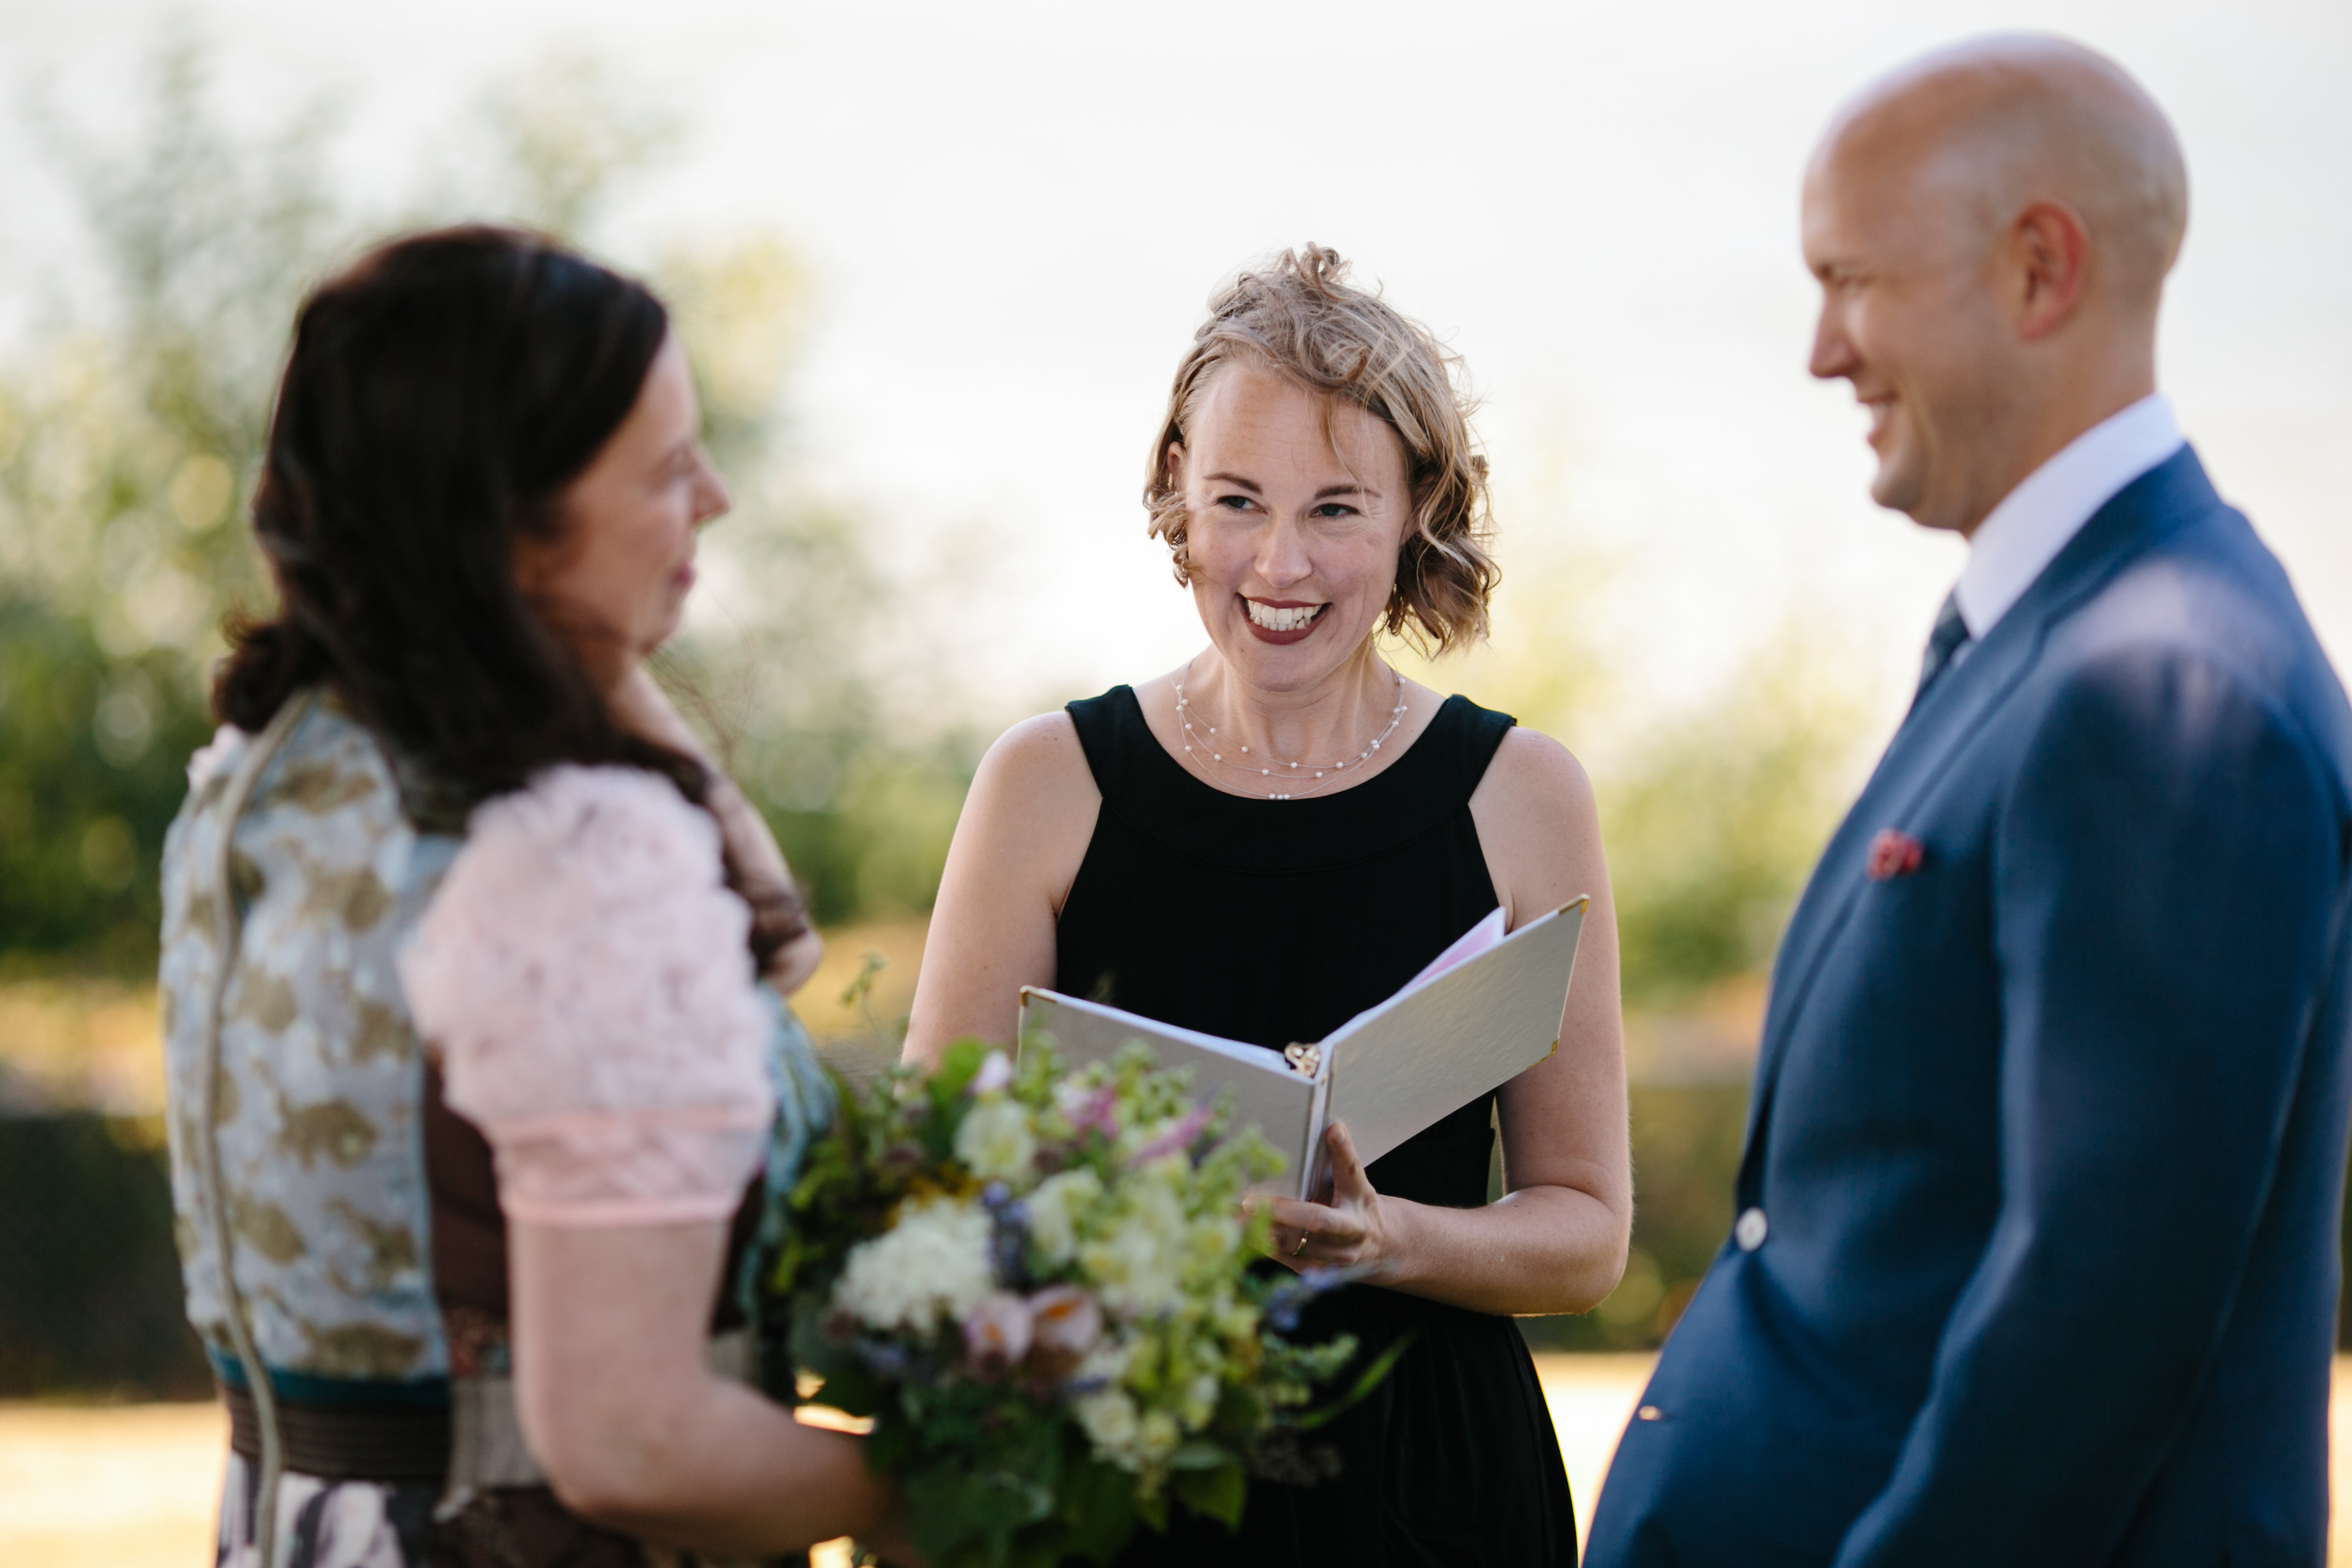 The Best Wedding Prayer for Your Wedding Ceremony - Young